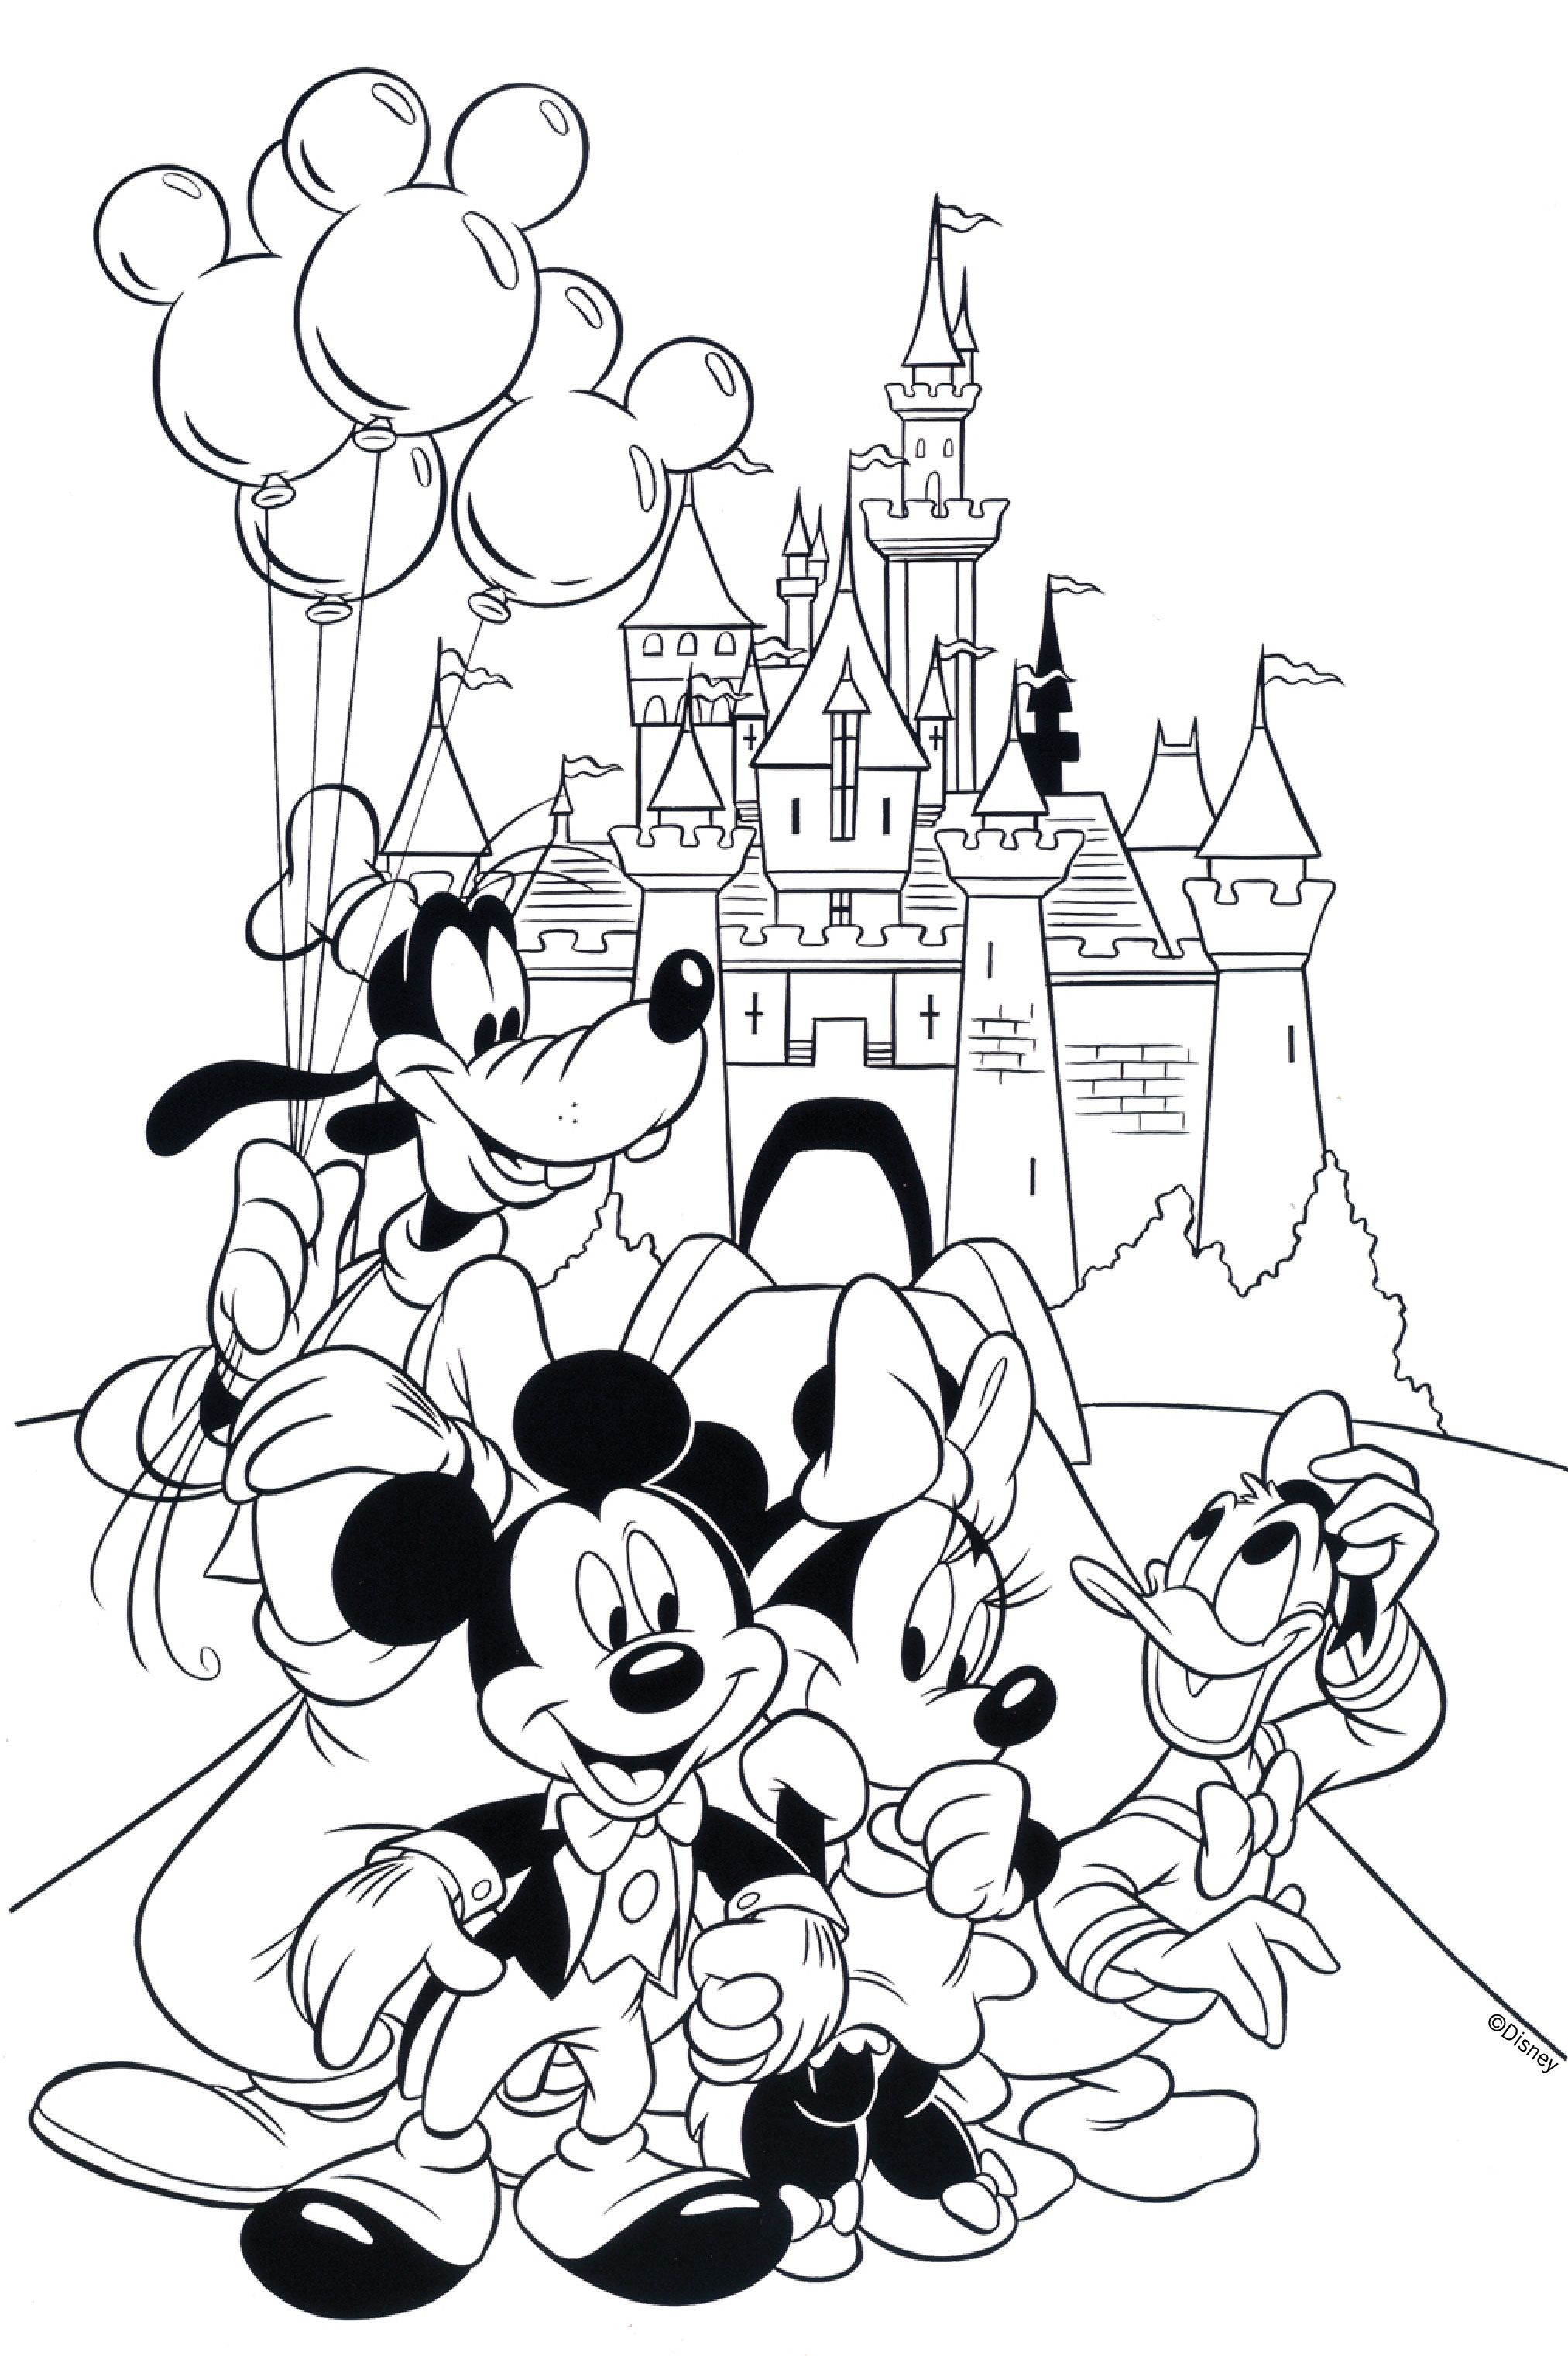 Free Disney Coloring Pages Coloring Books Disney Coloring Sheets